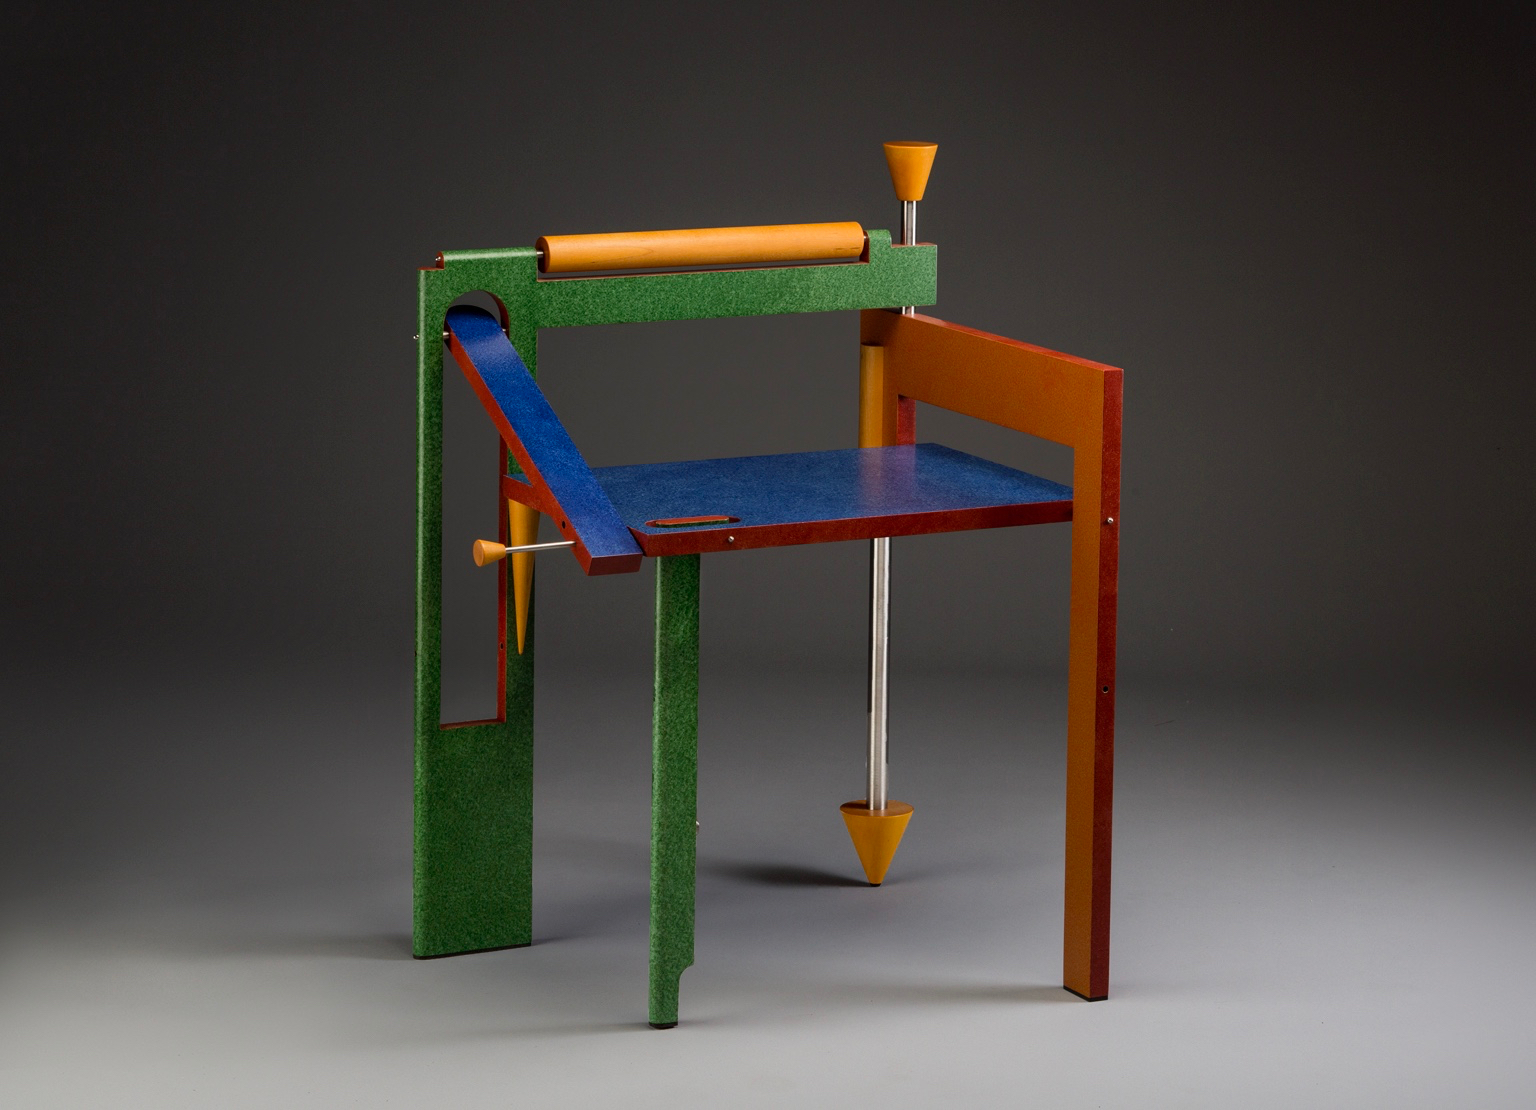 Folding Chair | 1989 I wood, stainless steel, paint I 34 x 25 x 22